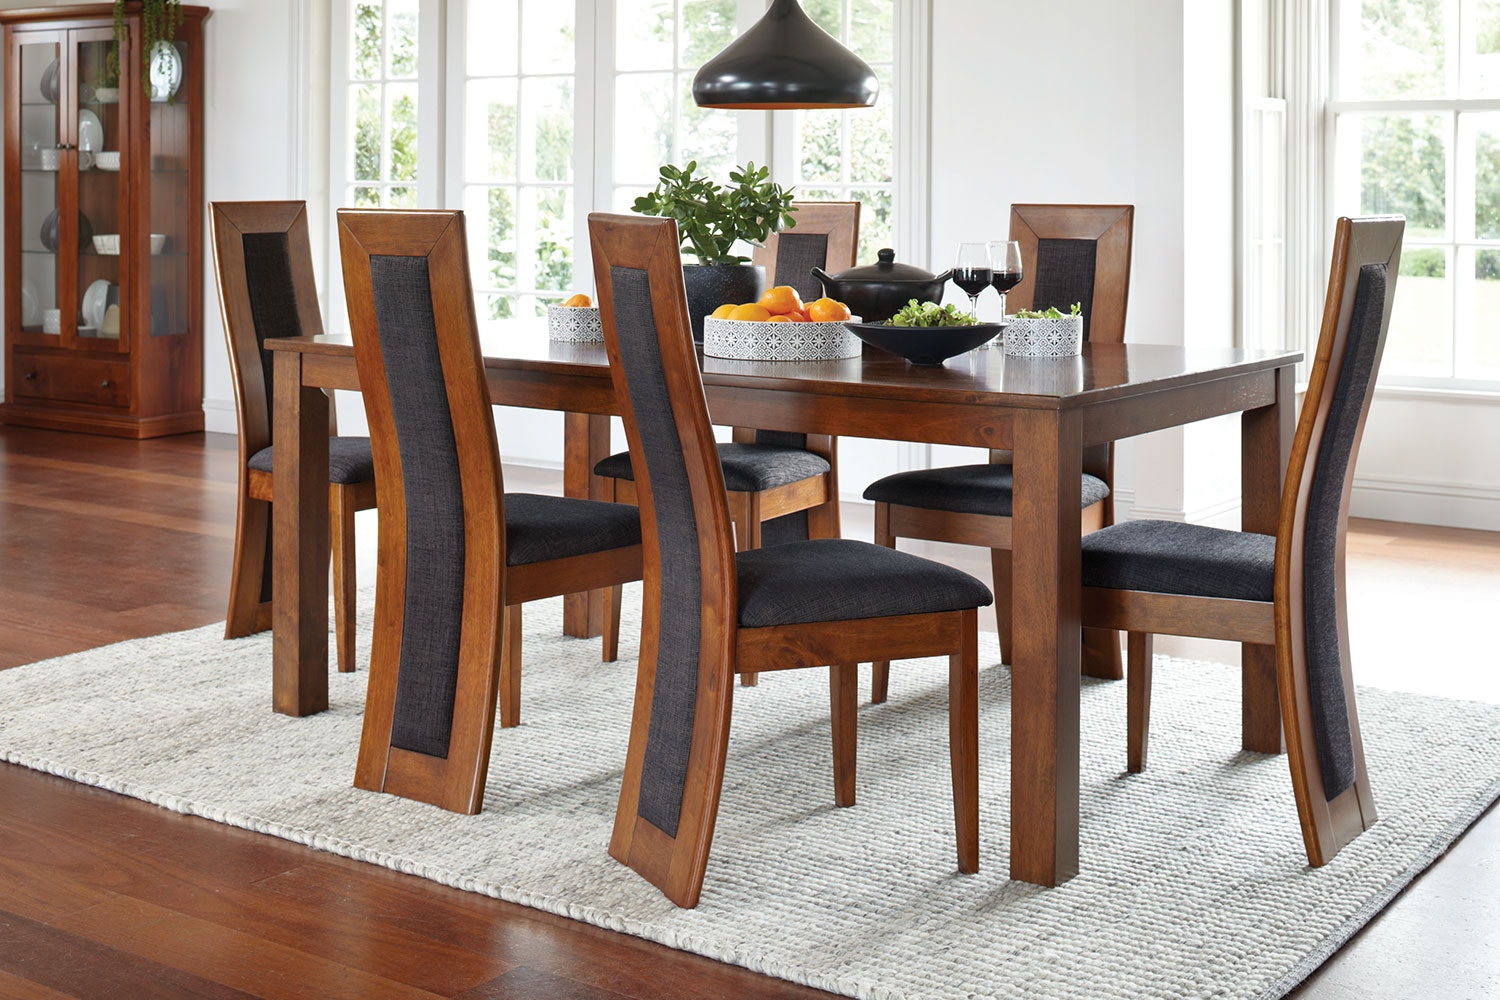 Monte Cristo 7 Piece Dining Suite by John Young Furniture